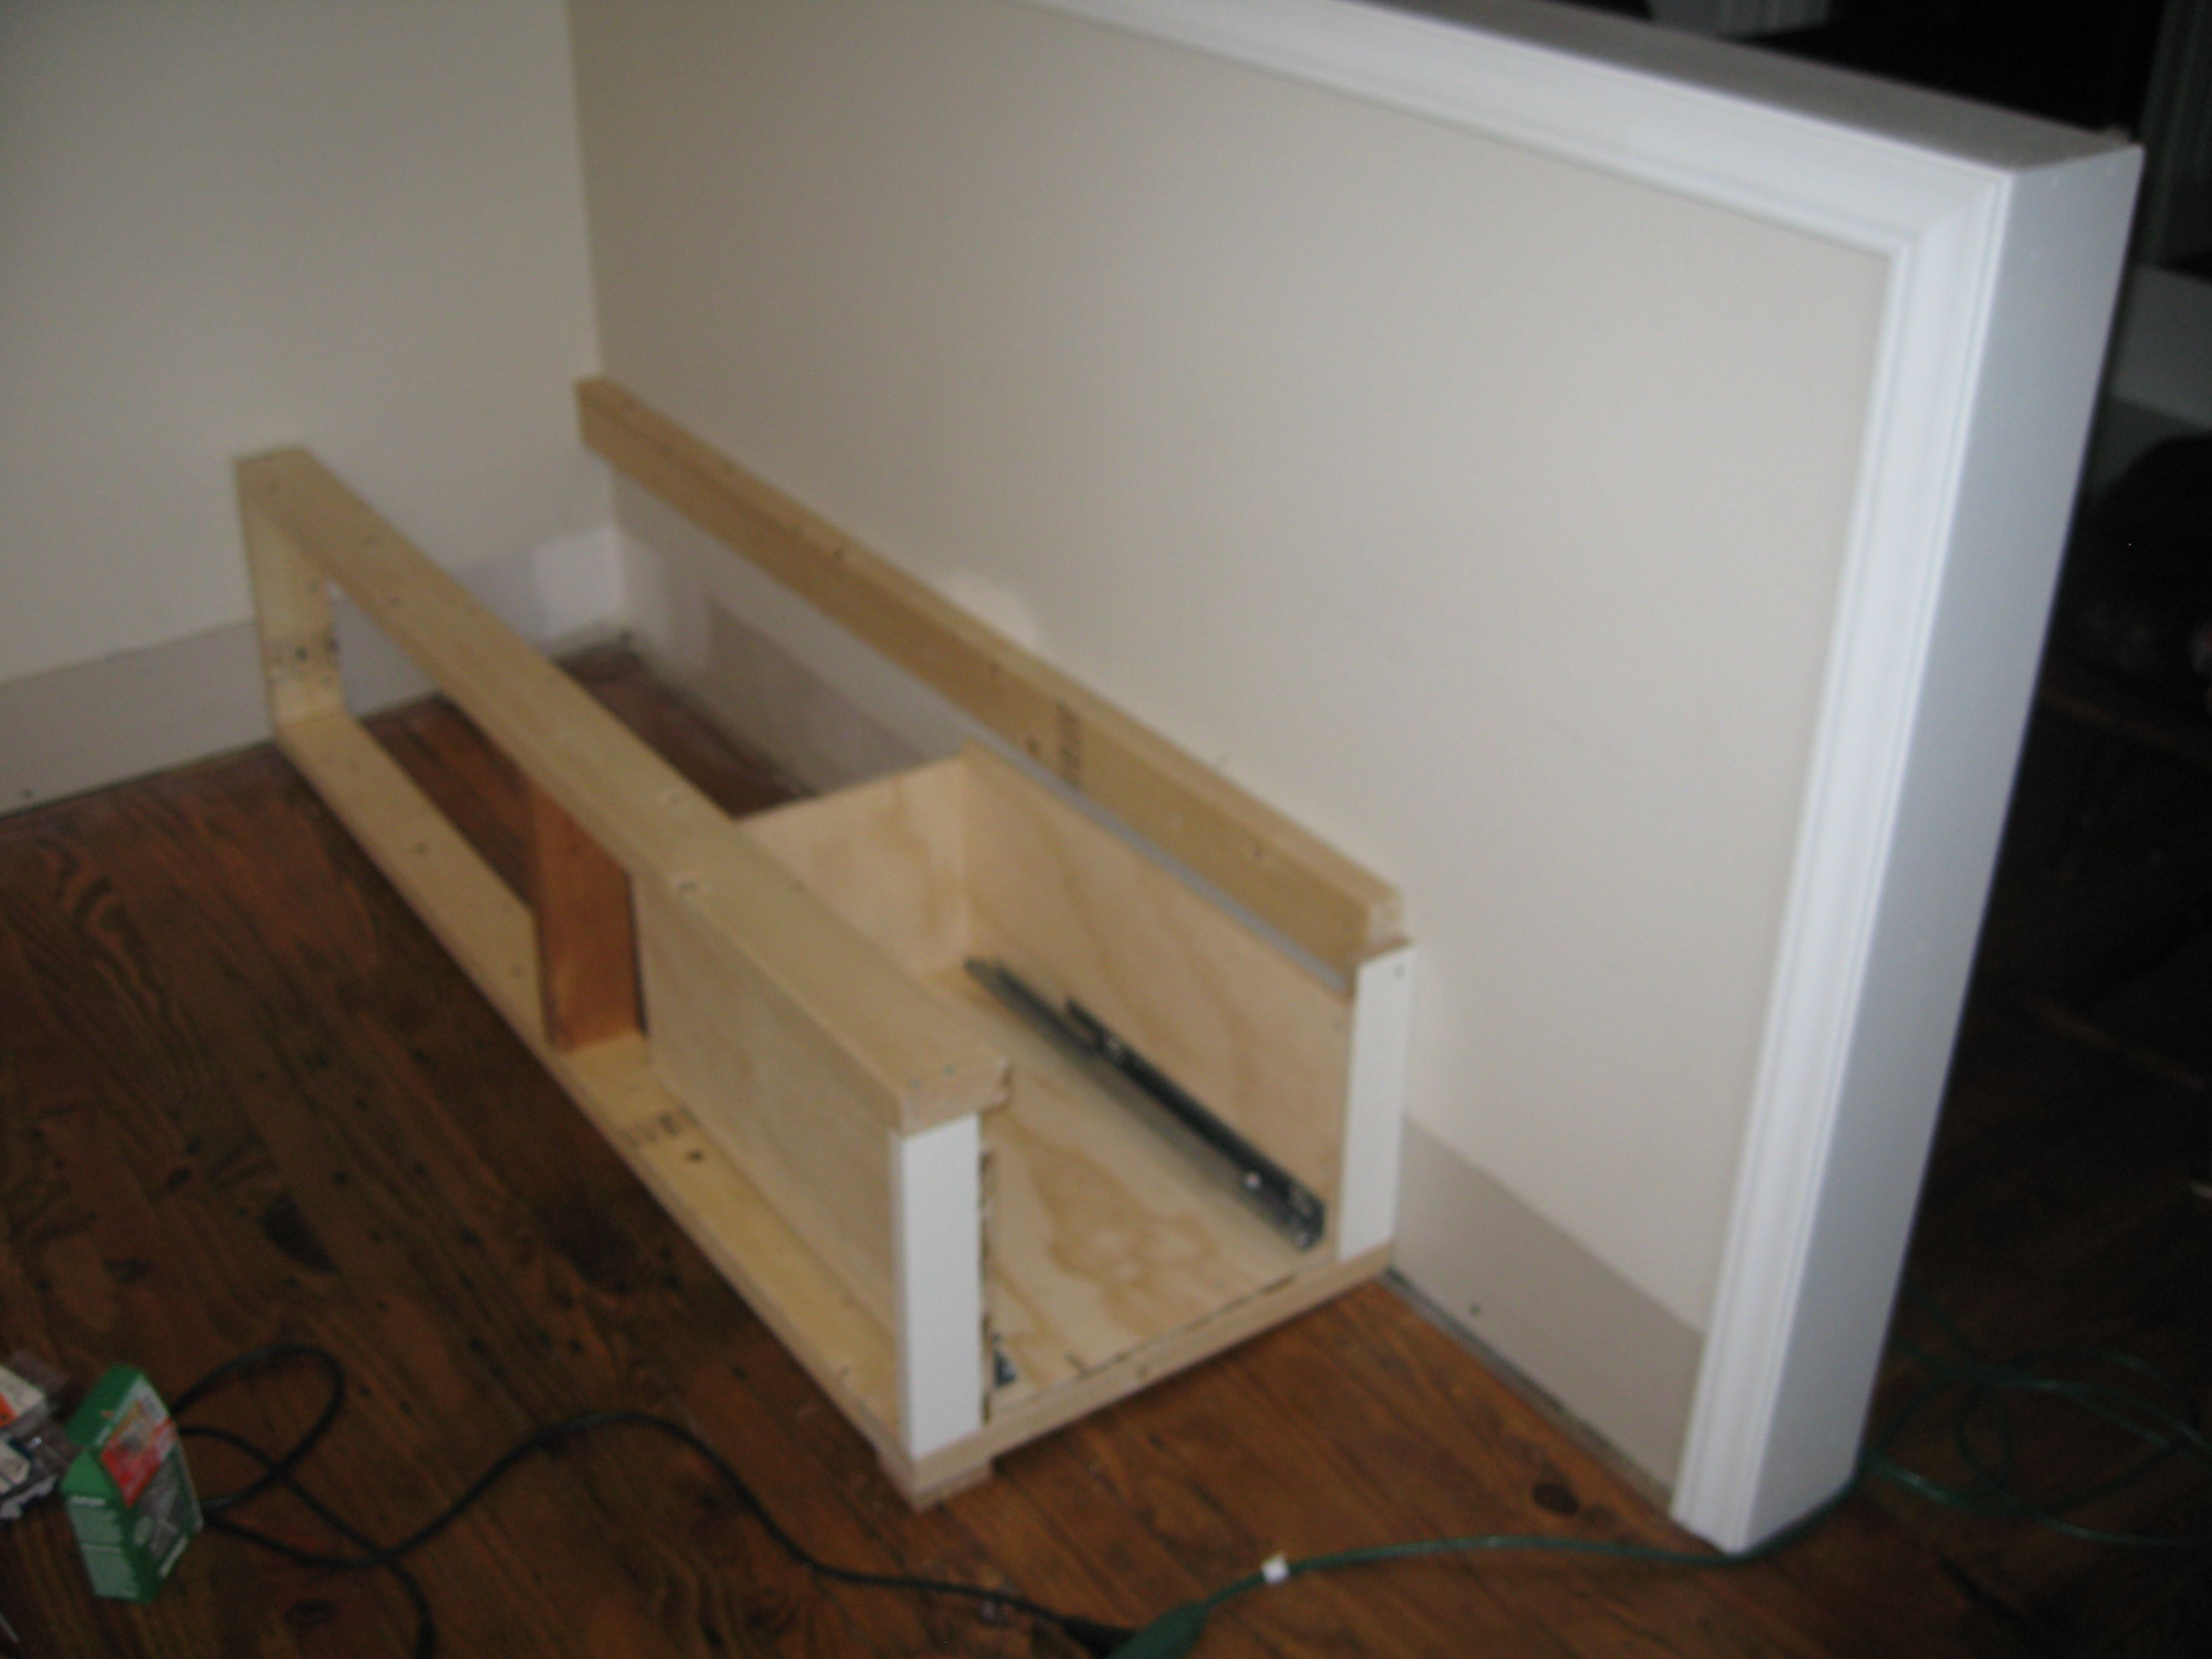 building the banquette frame   Jill Carson on